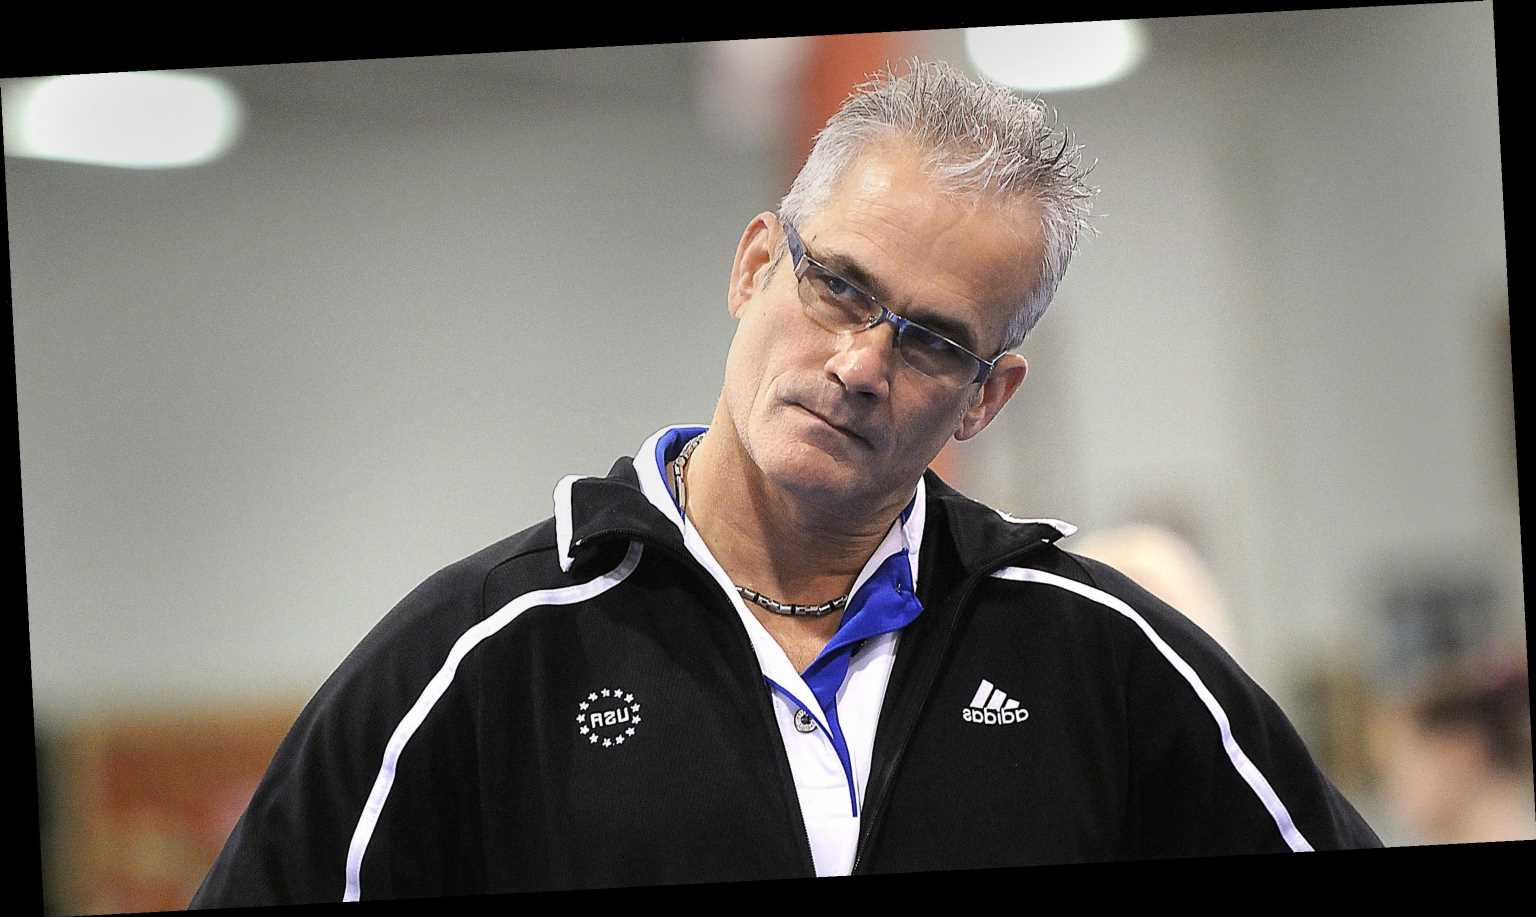 John Geddert, former Olympic gymnastics coach, kills himself after being charged with human trafficking, sex assault